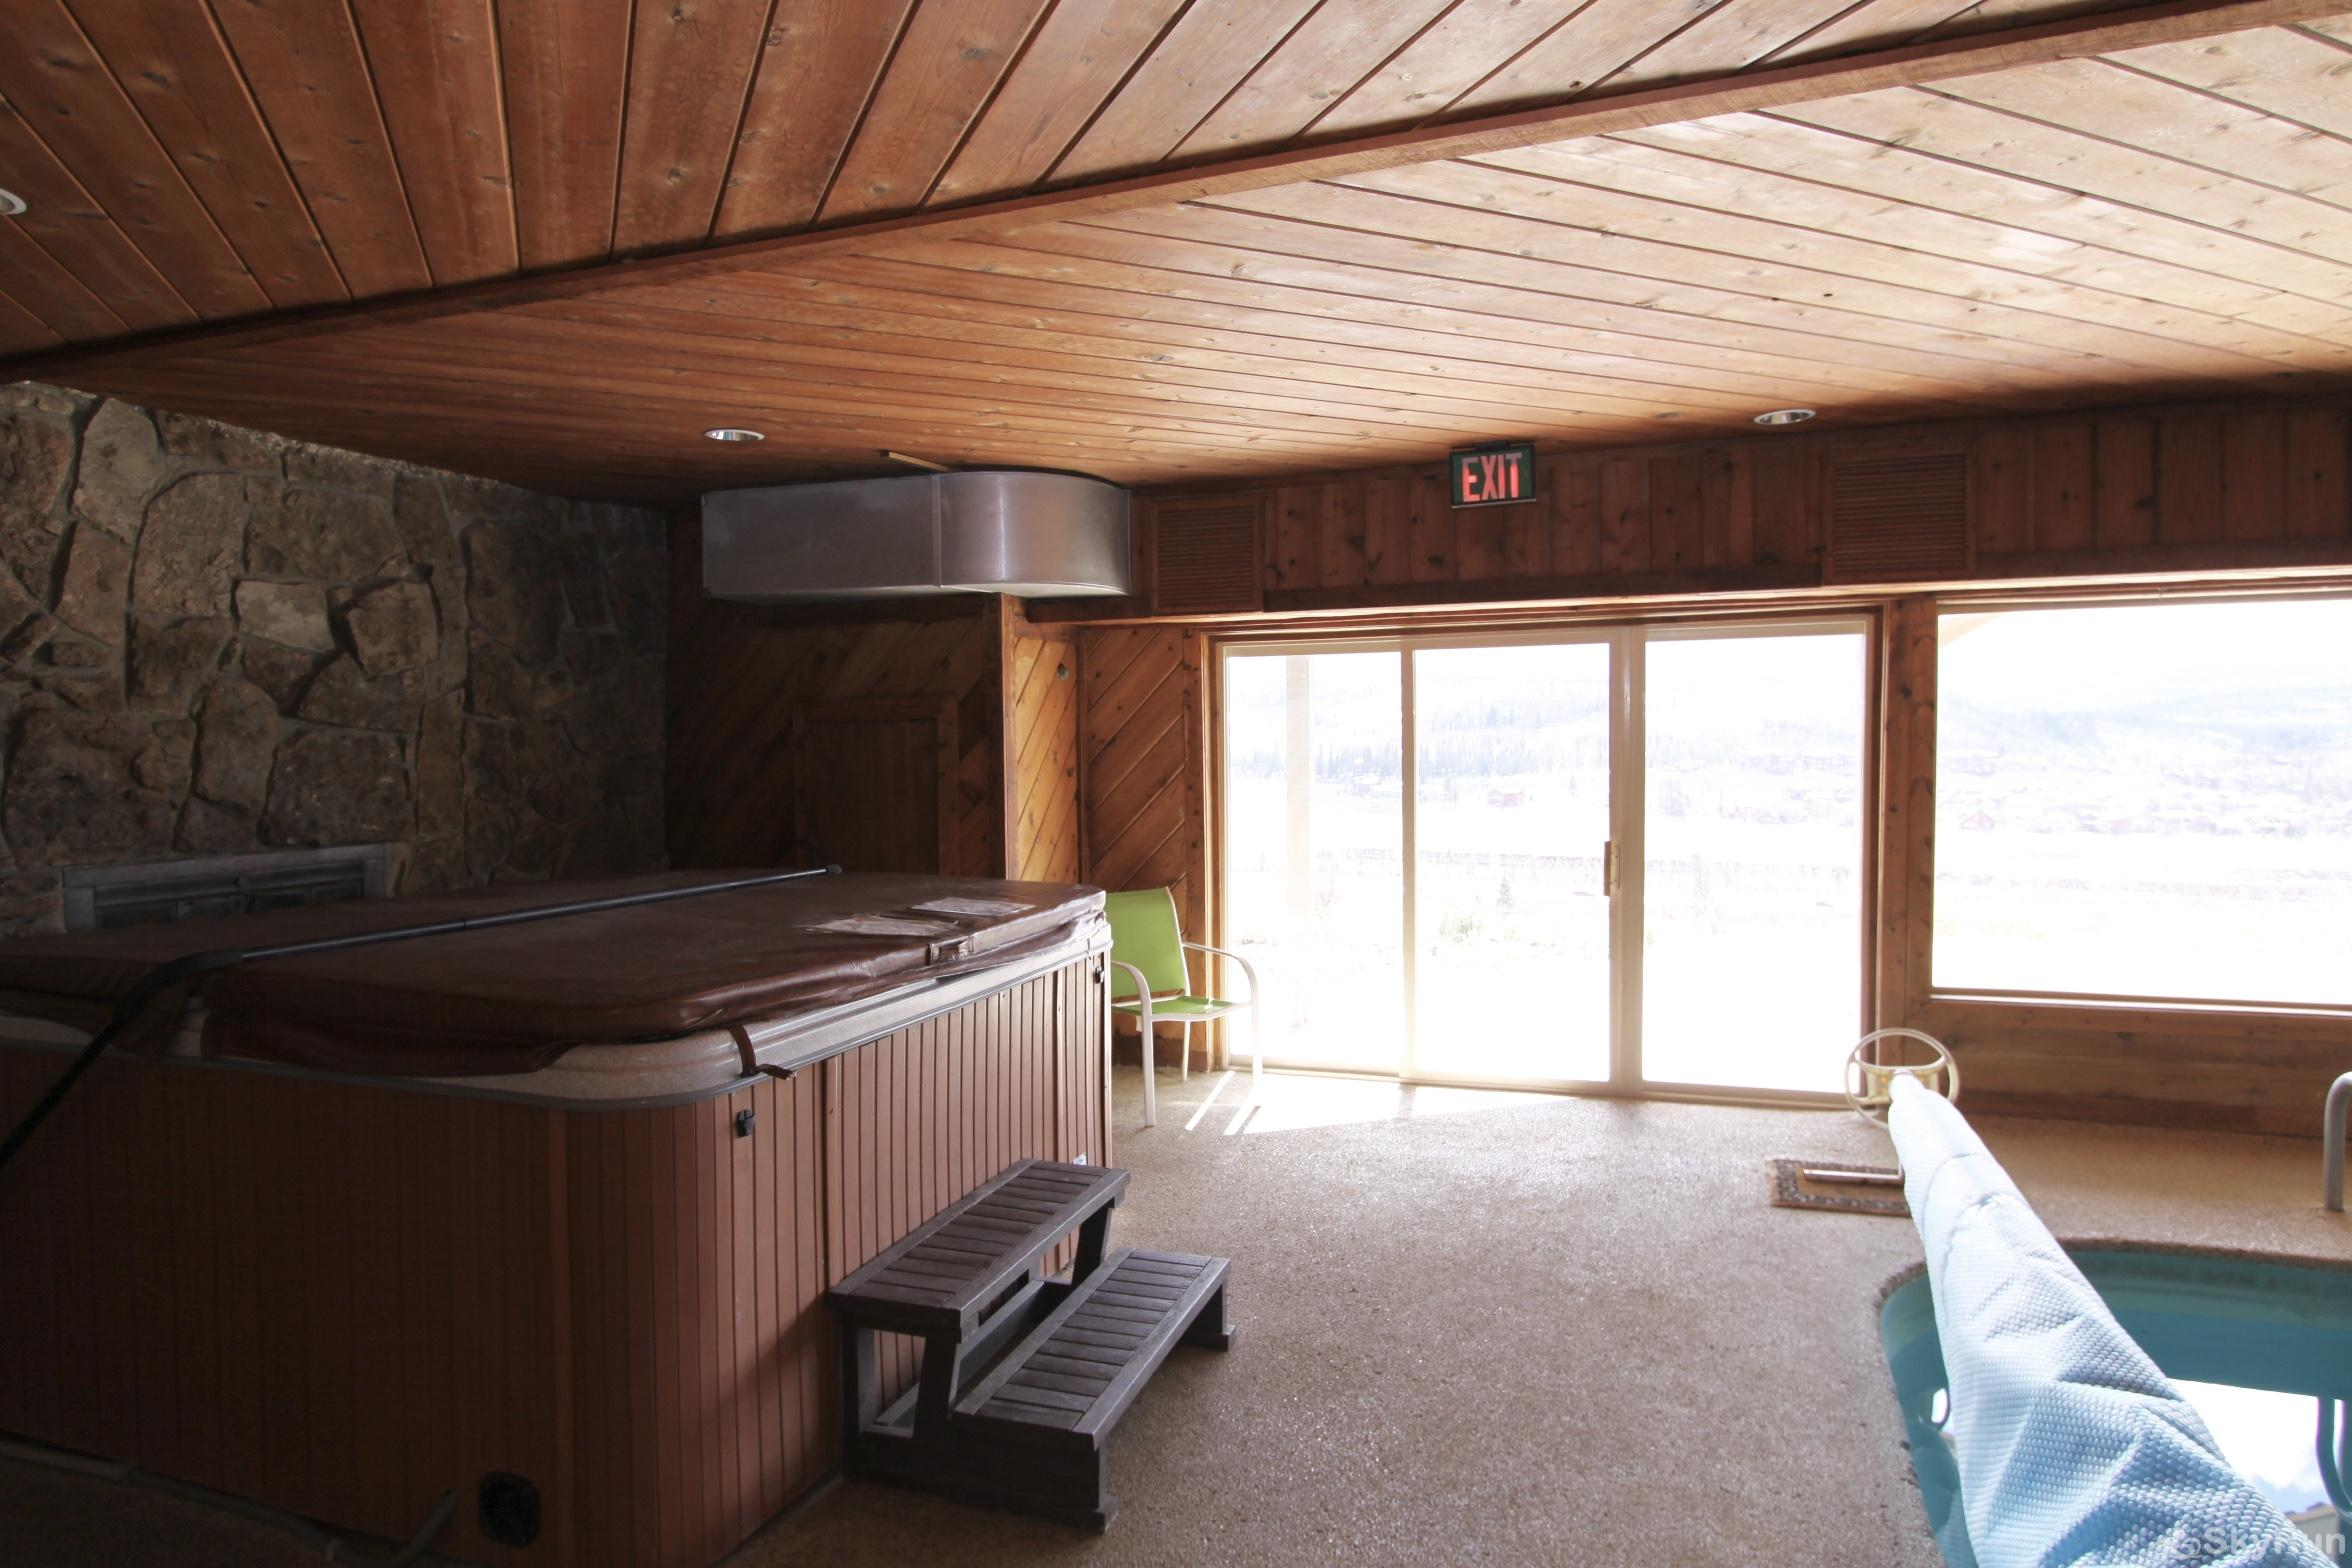 113B WPTC - Cranmer Rd Shared hot Tub